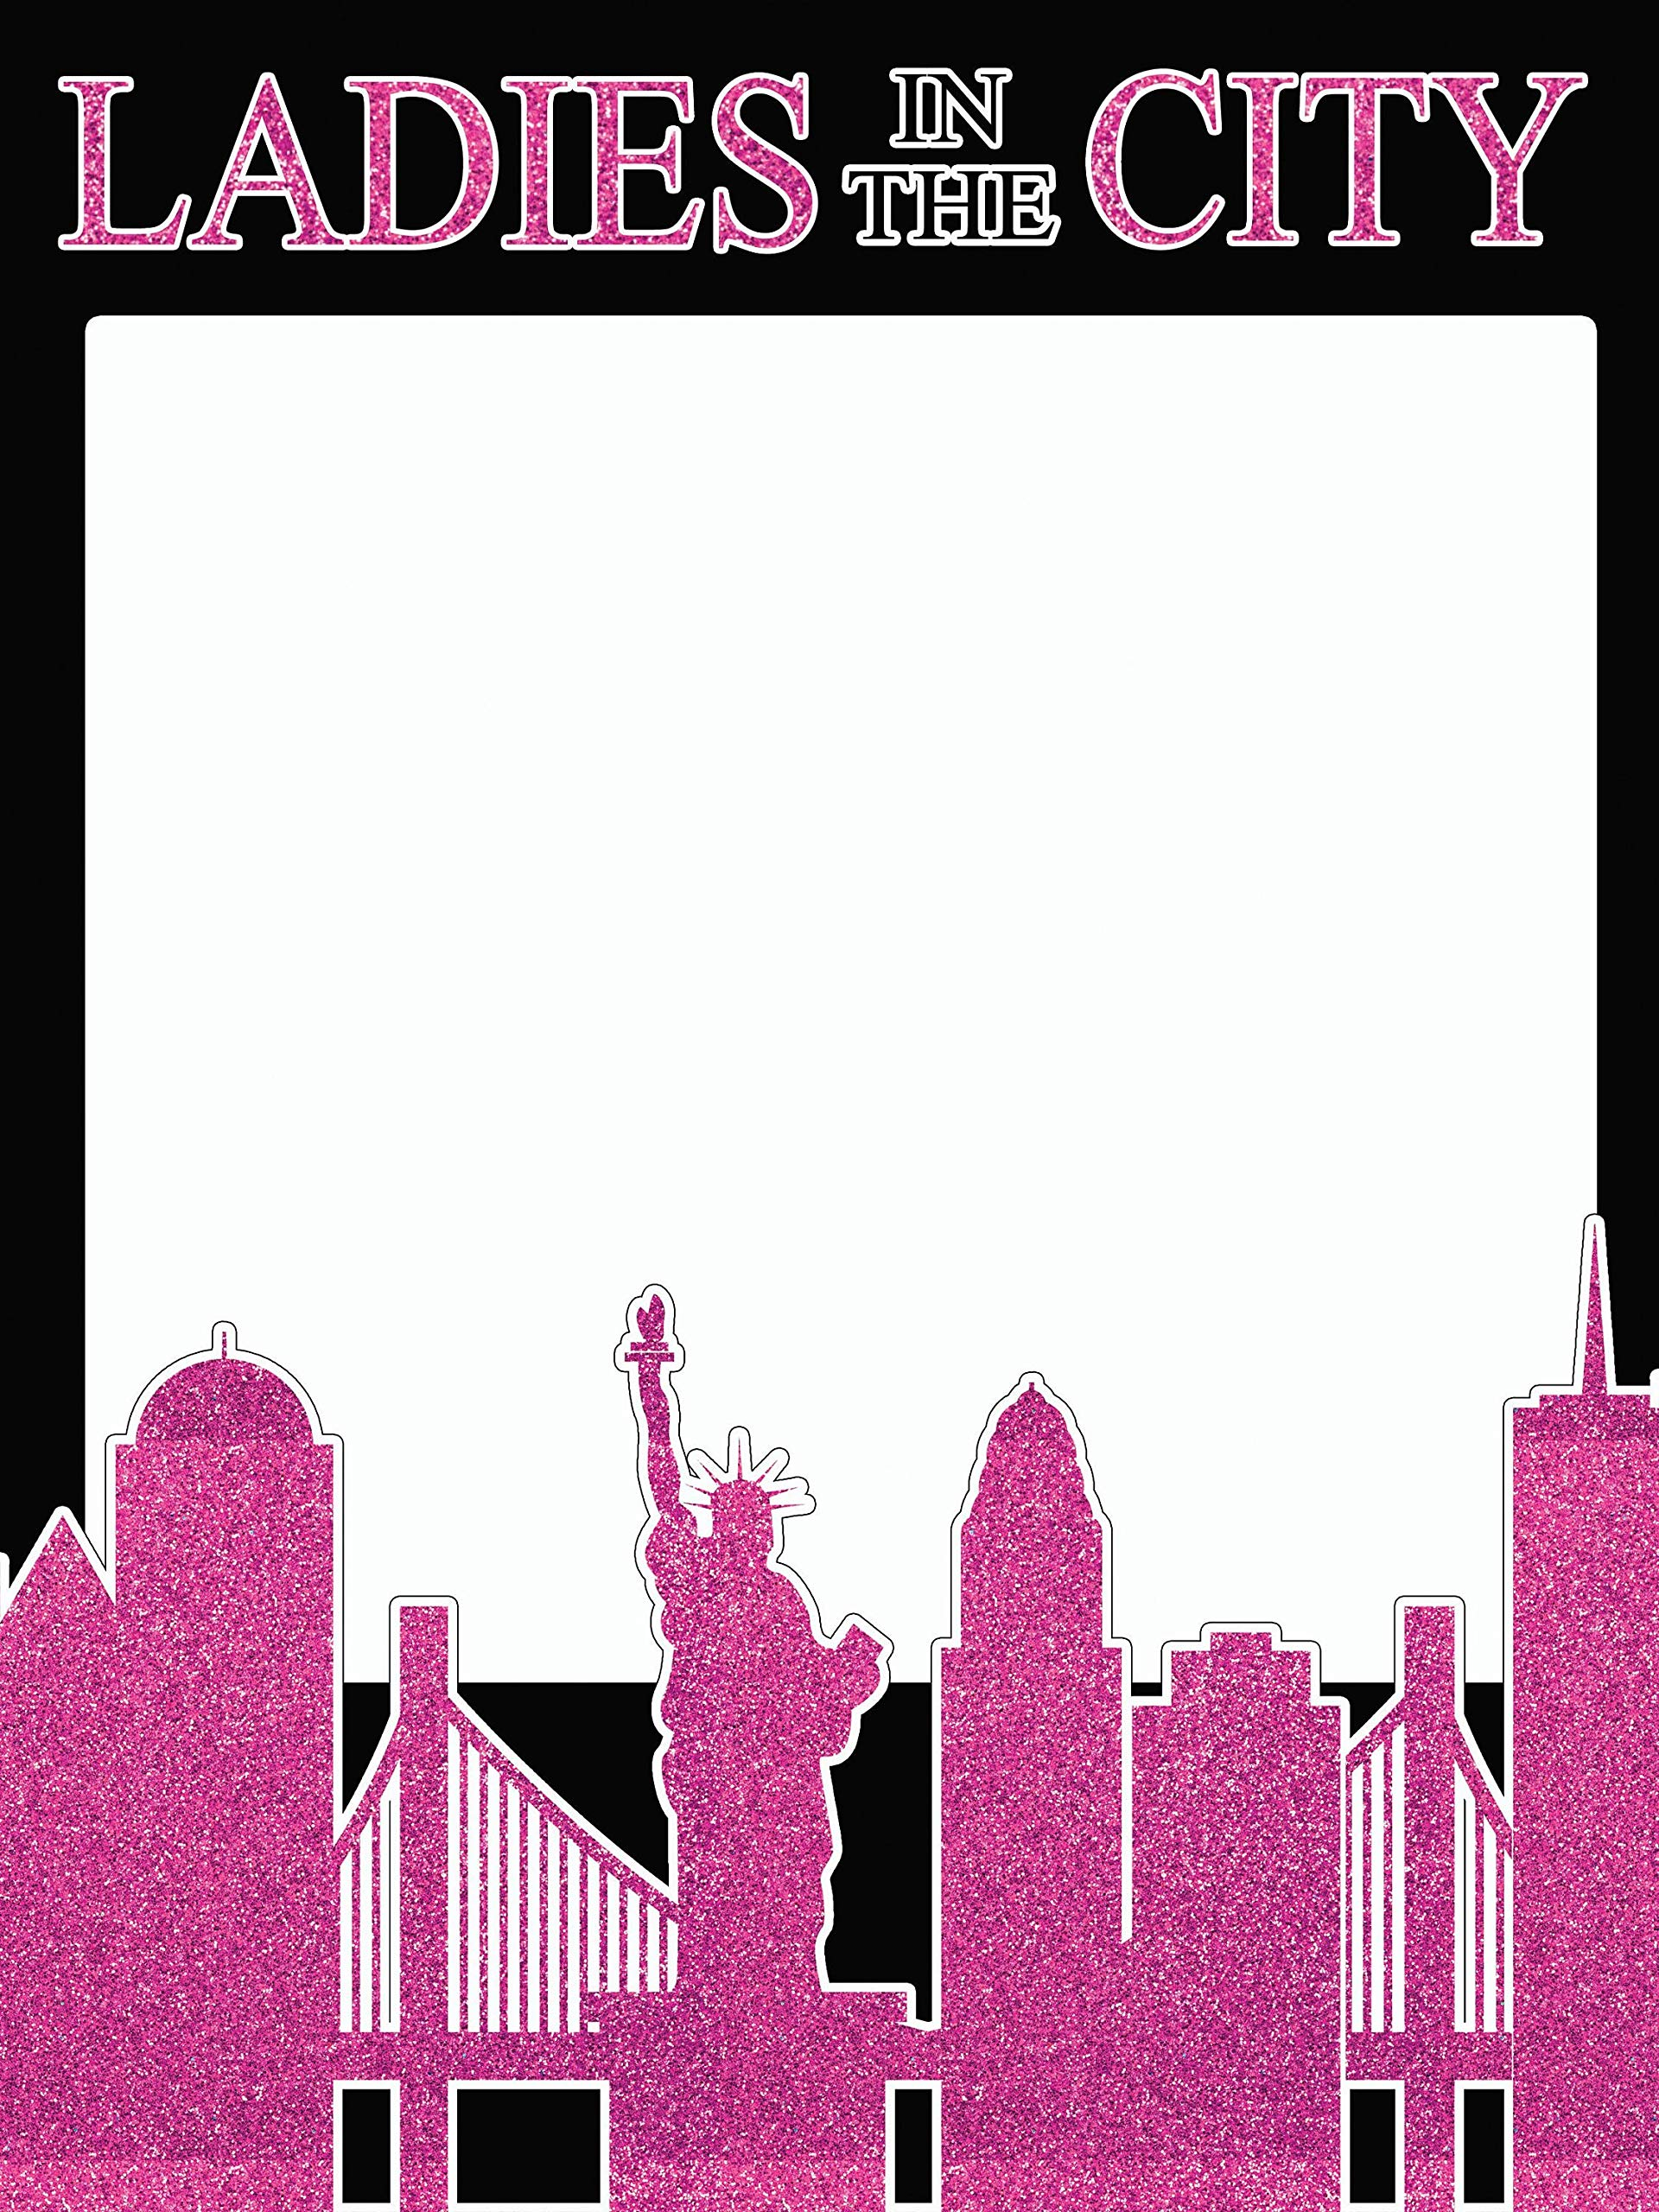 speedy orders Bachelorette Photo Booth Prop Size 36x24, Ladies in The City, New York Party Decorations, Photo Props, Selfie Frame, Party Supply Photo Booth Props